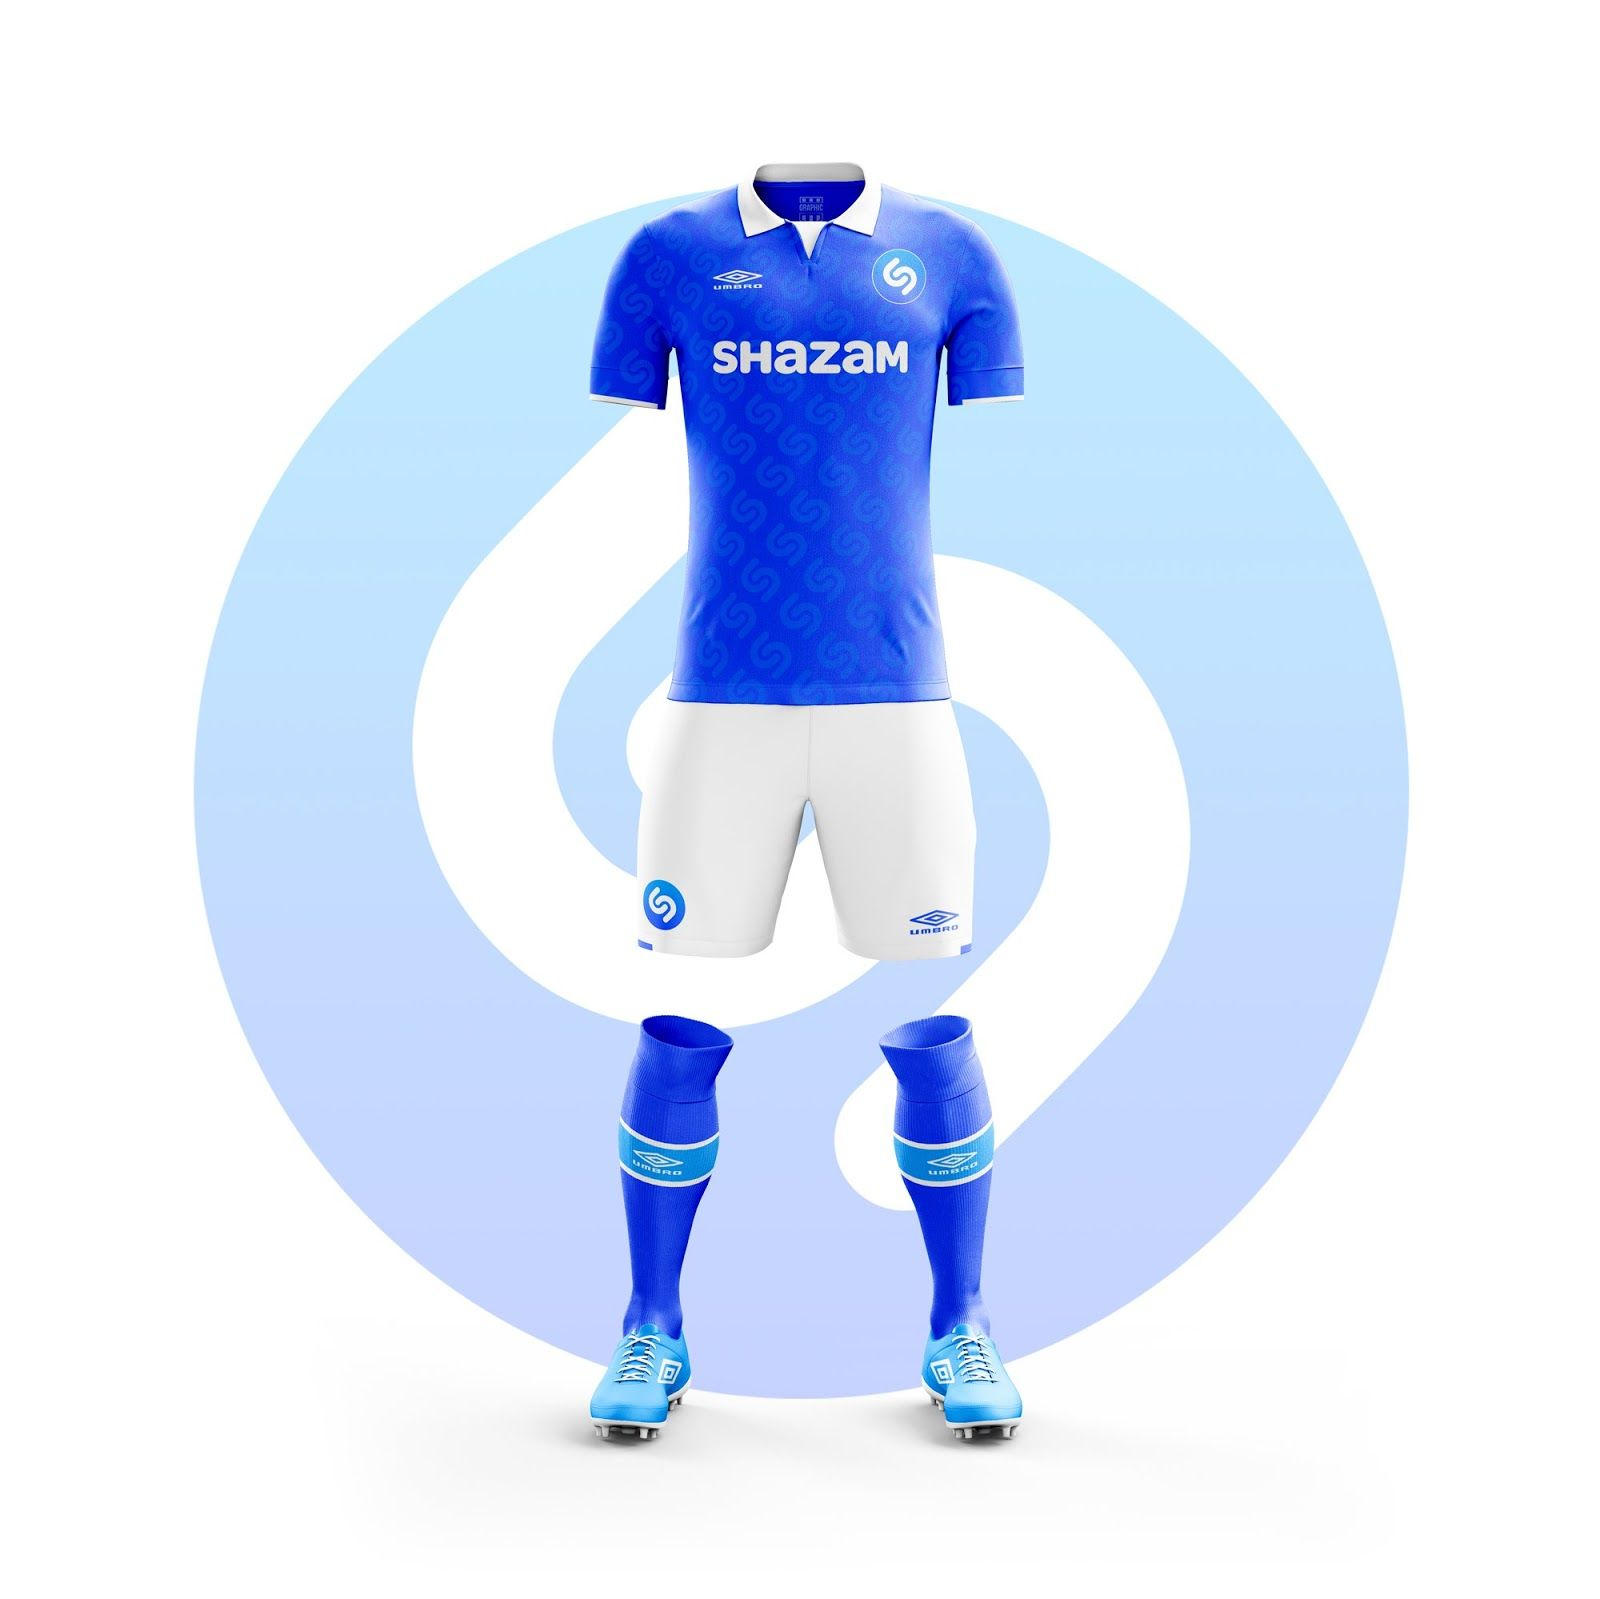 App store football kits by graphic untd part 3 4